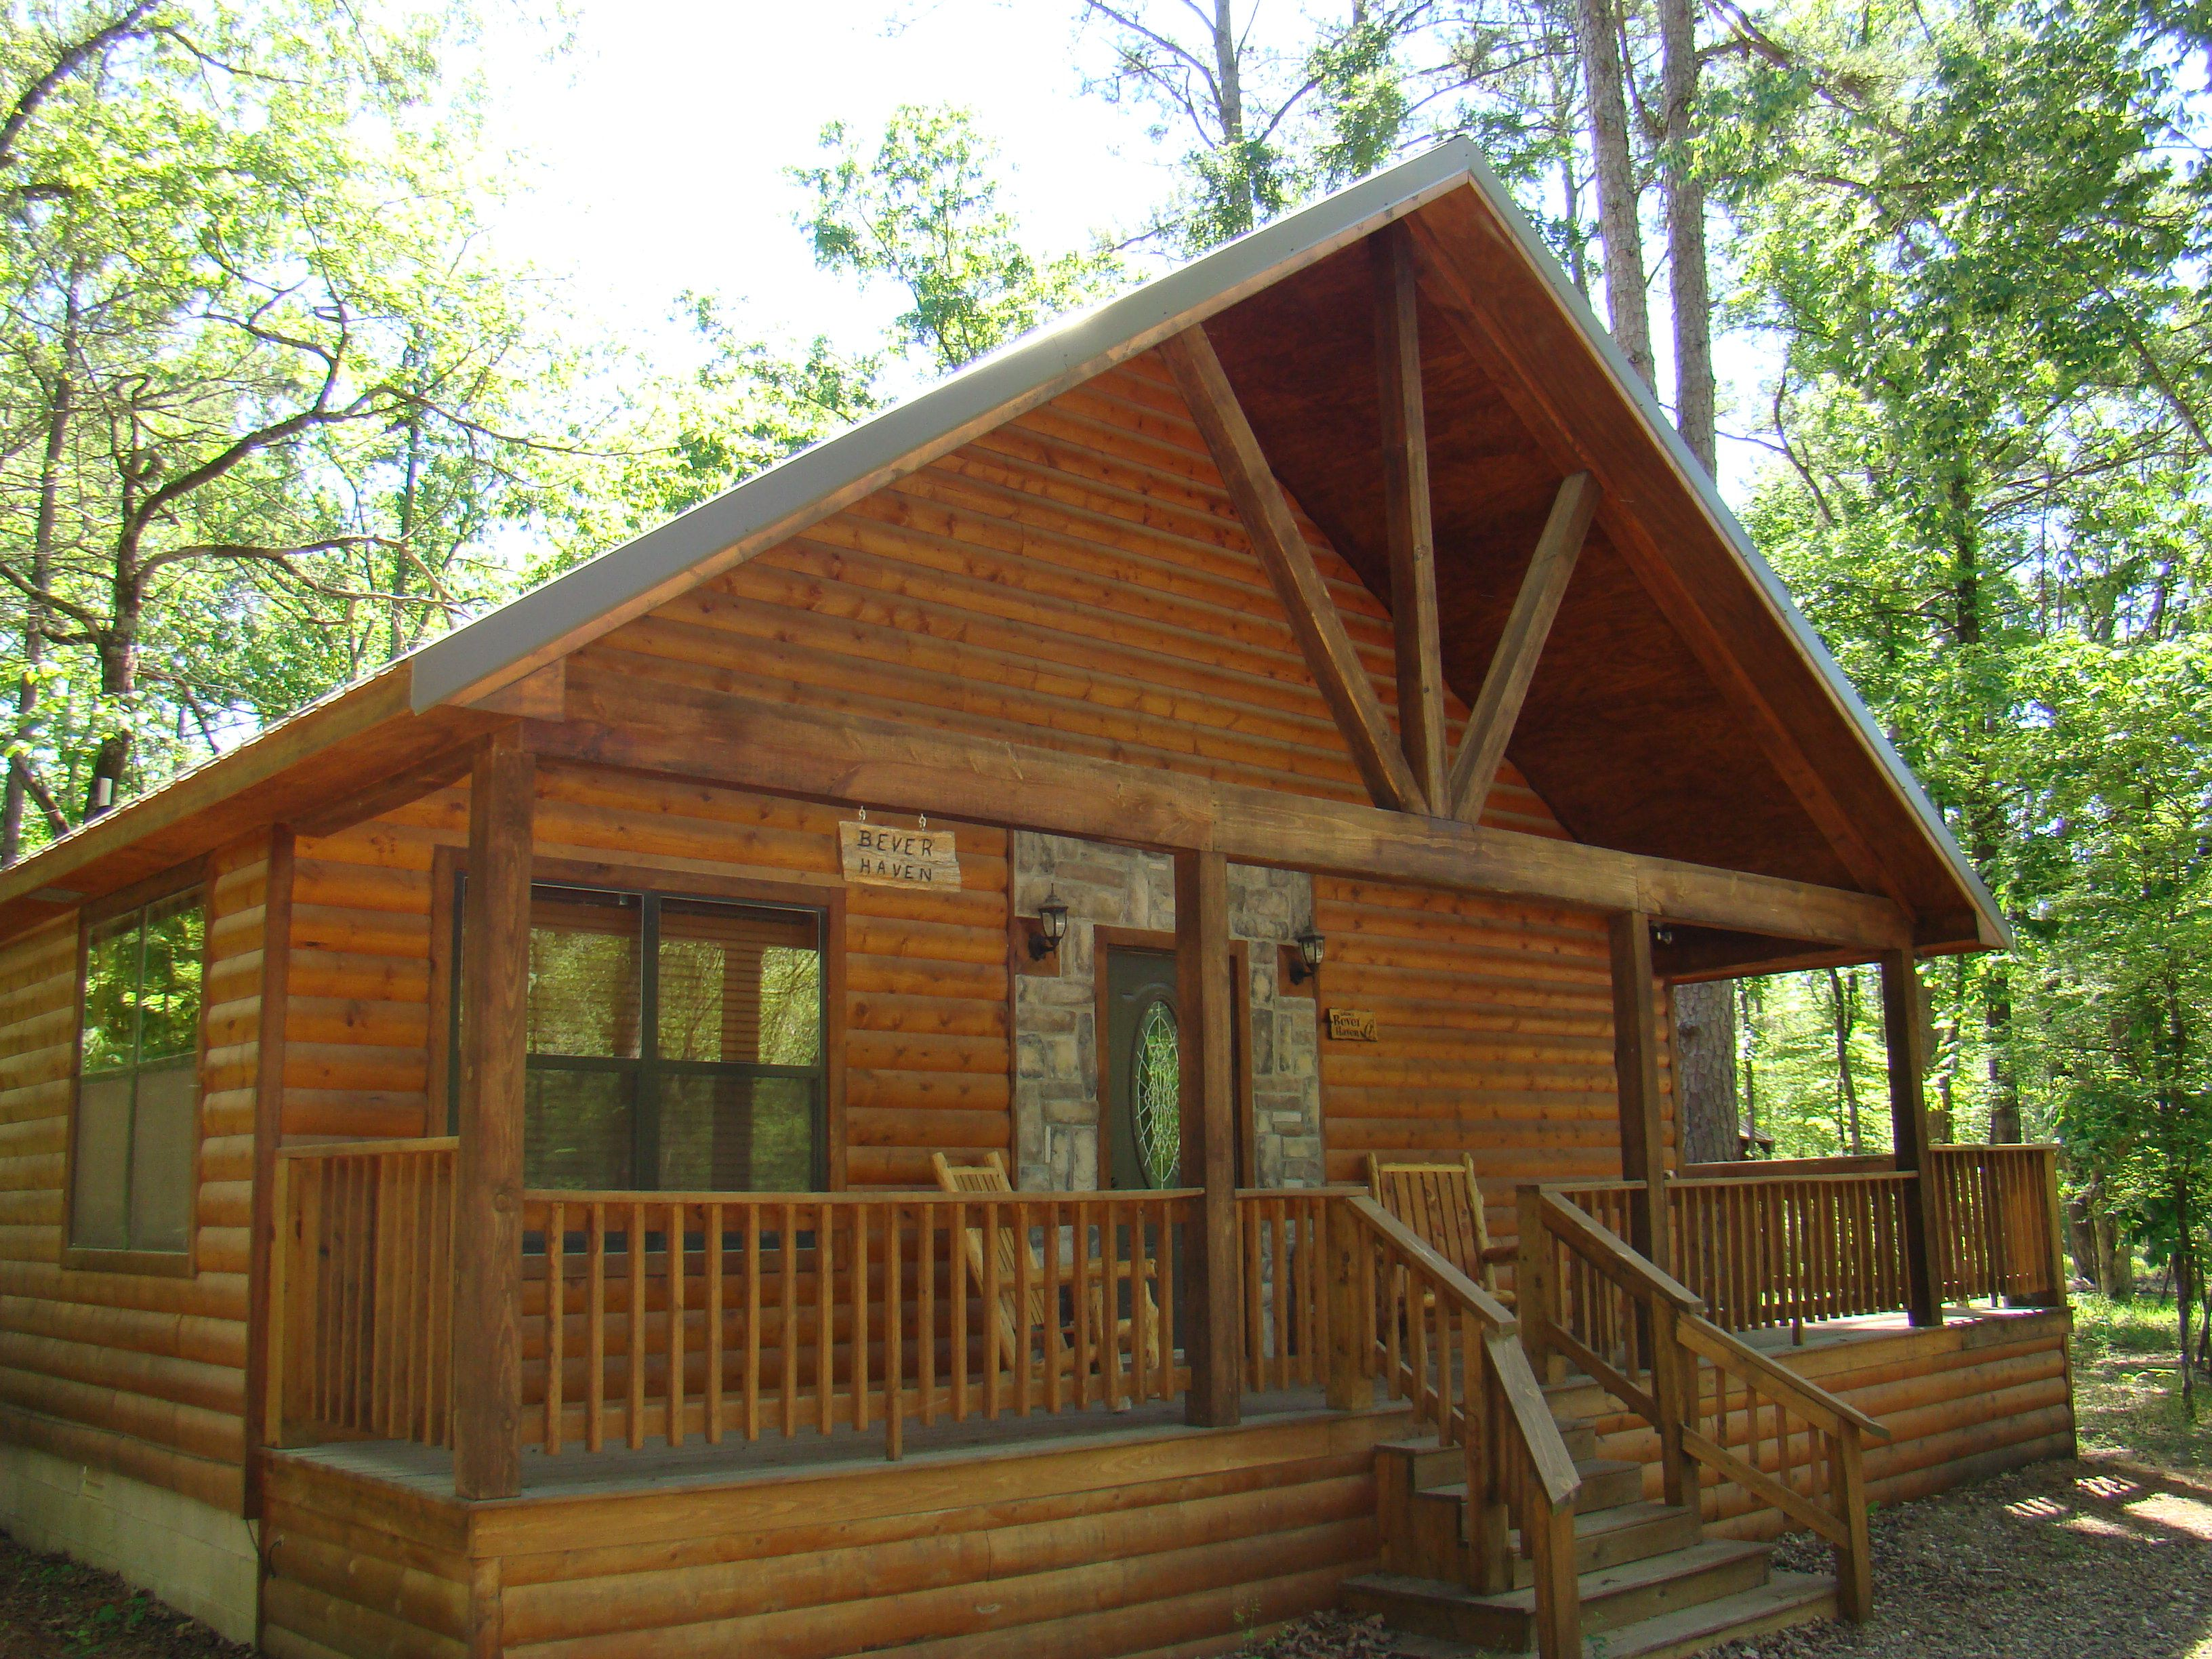 public at llc creek bow cedar fishing beavers oklahoma us mapquest lakes cabins ok bend circle broken experience